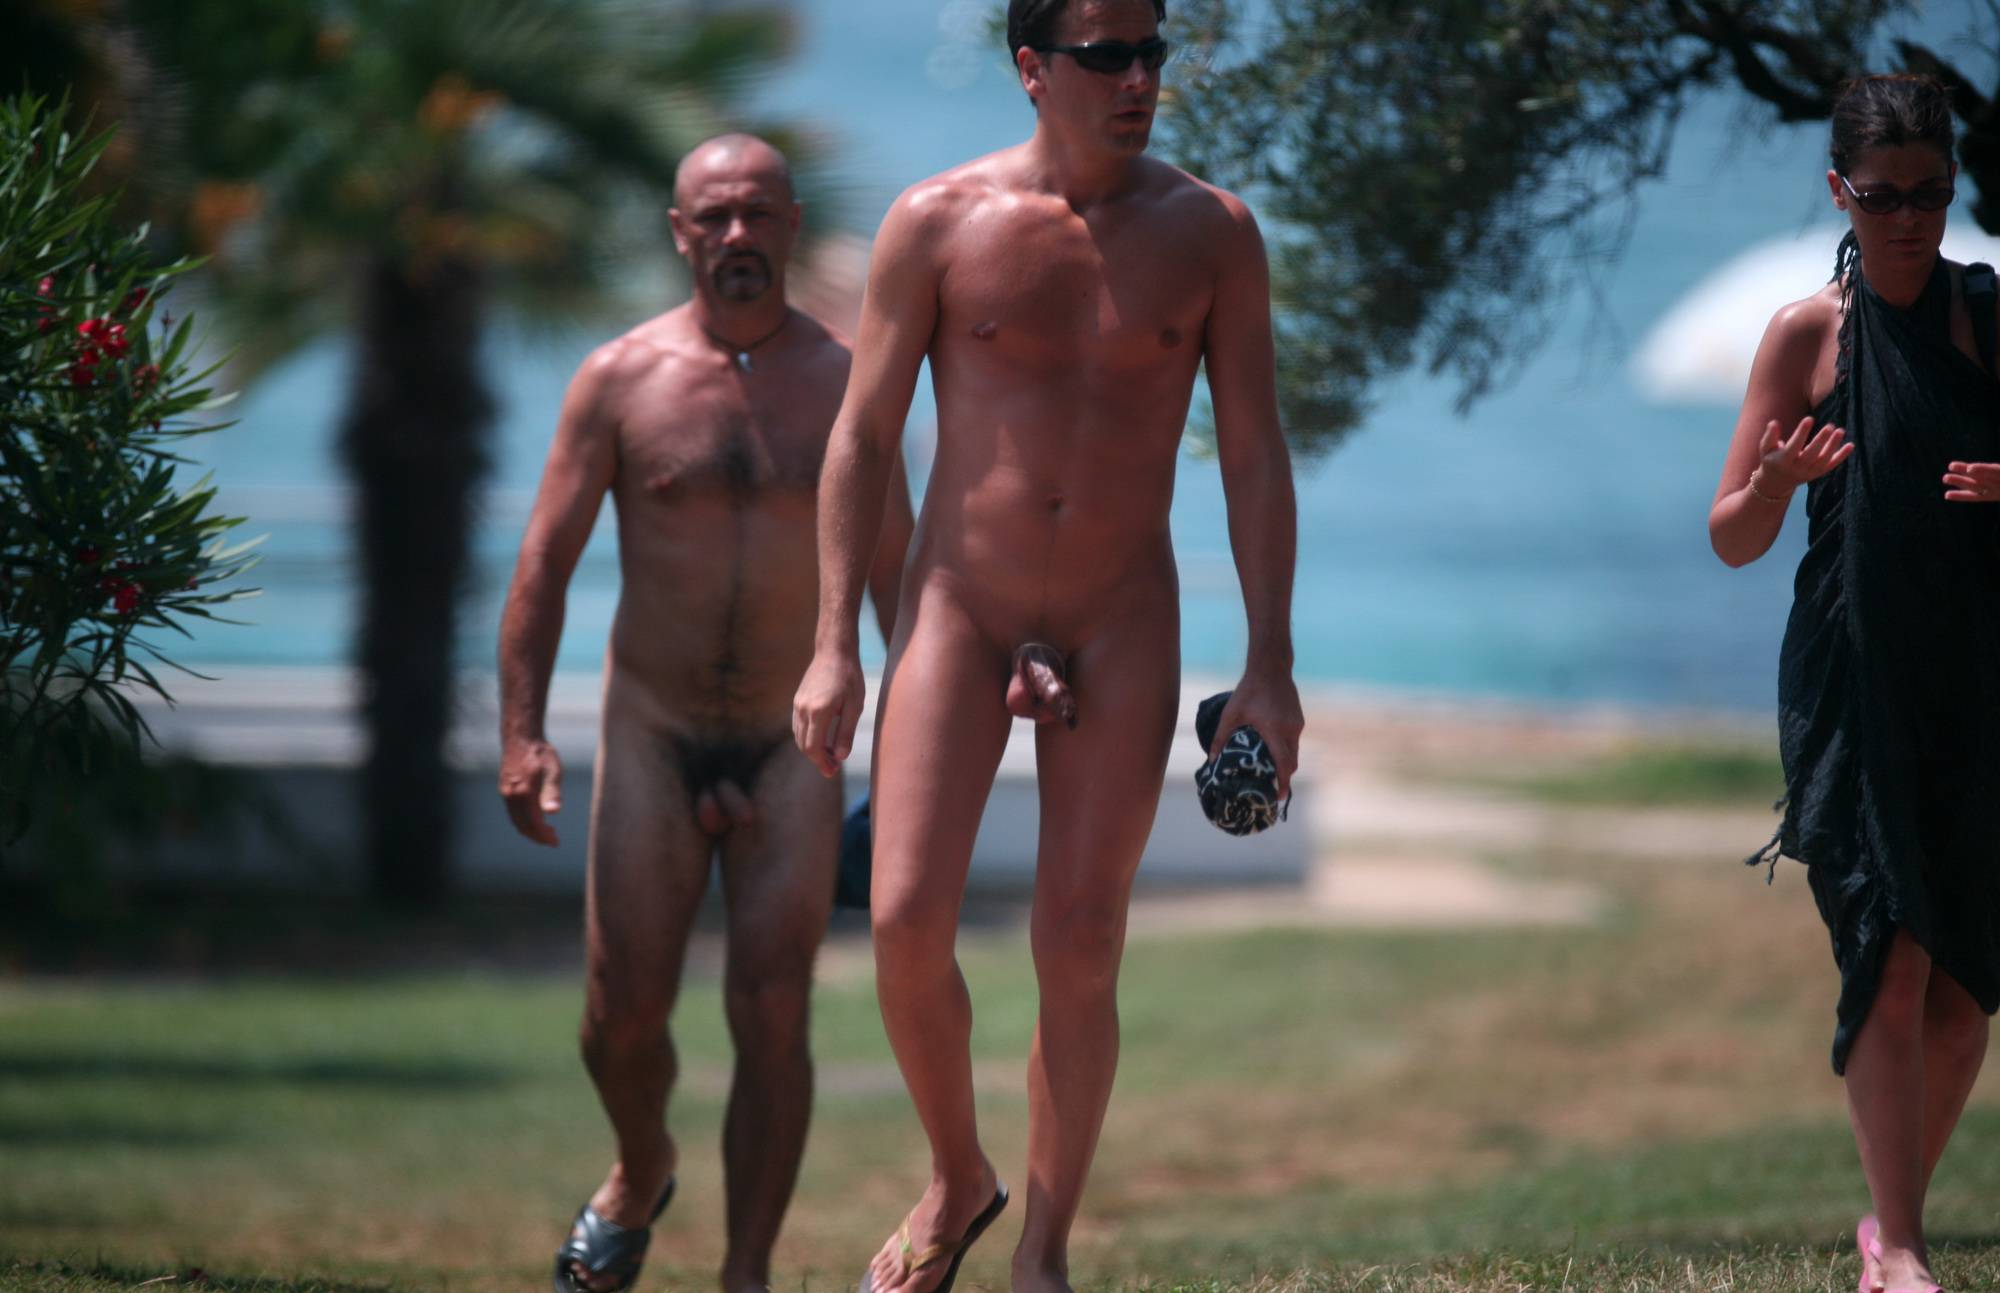 Nudist Family Heading Out - 3